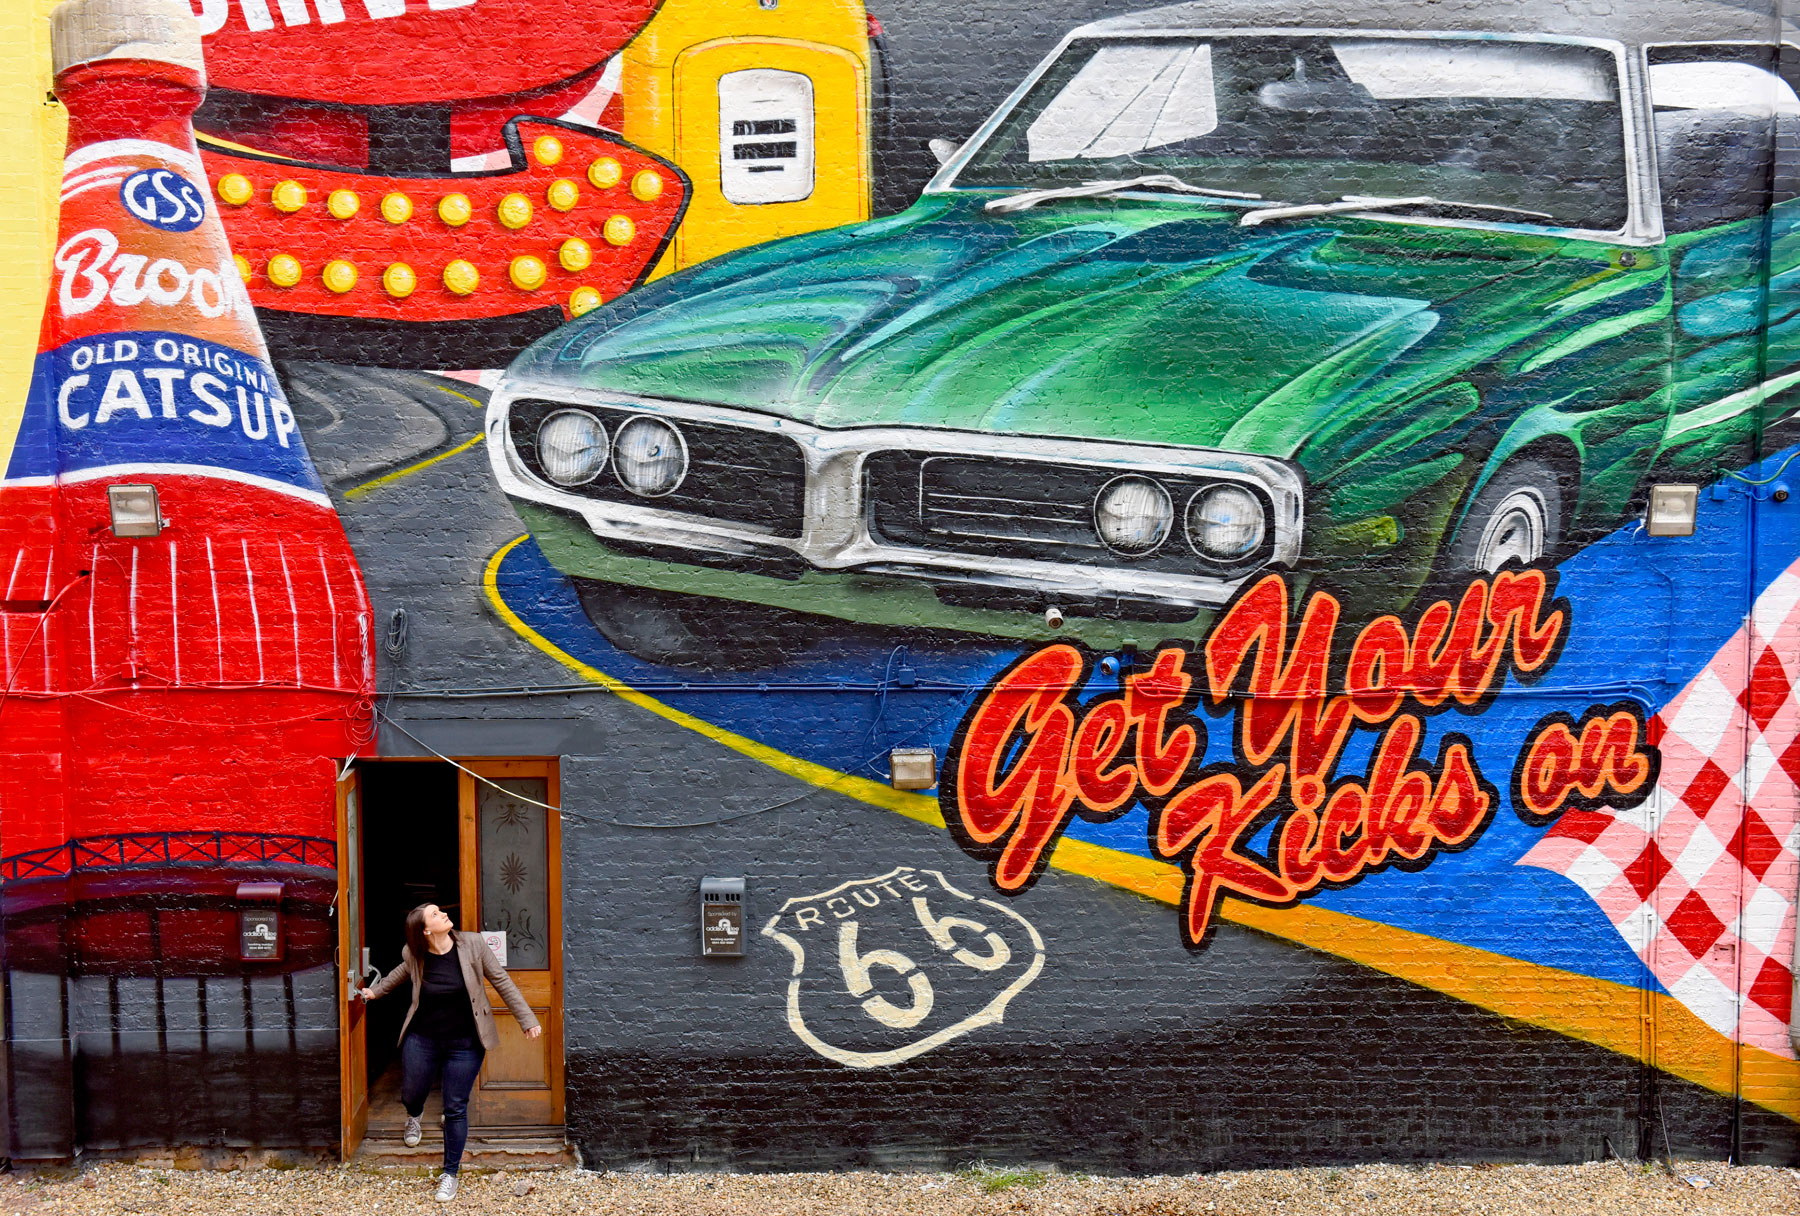 Giant London Wall Mural For Iconic Route 66's 90th Anniversary